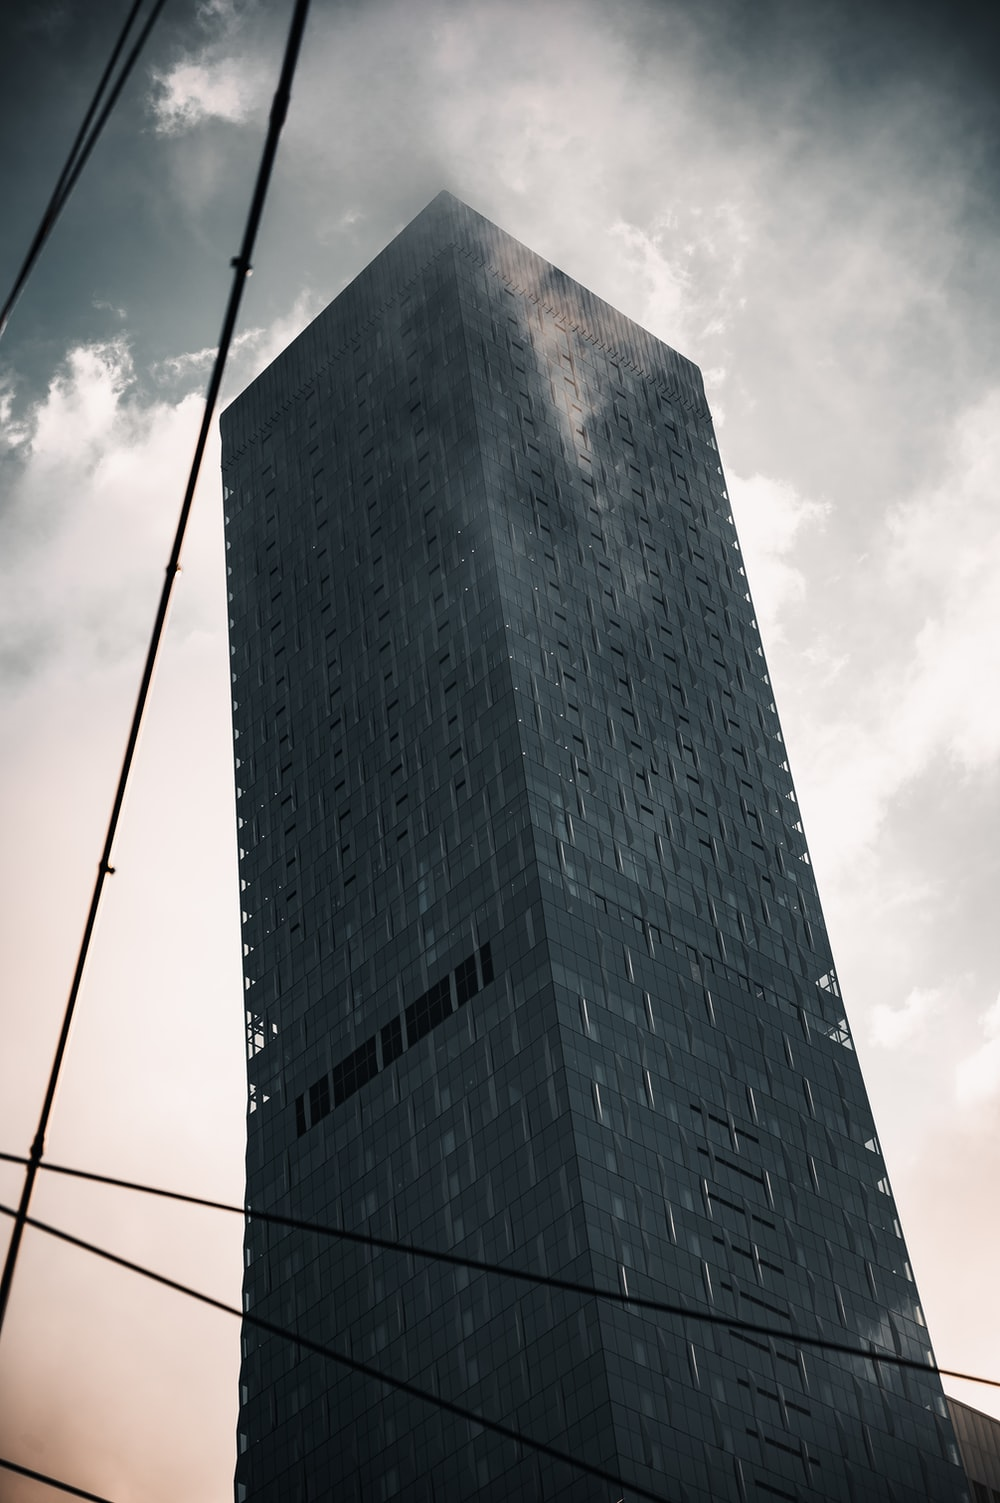 gray concrete building under white clouds during daytime